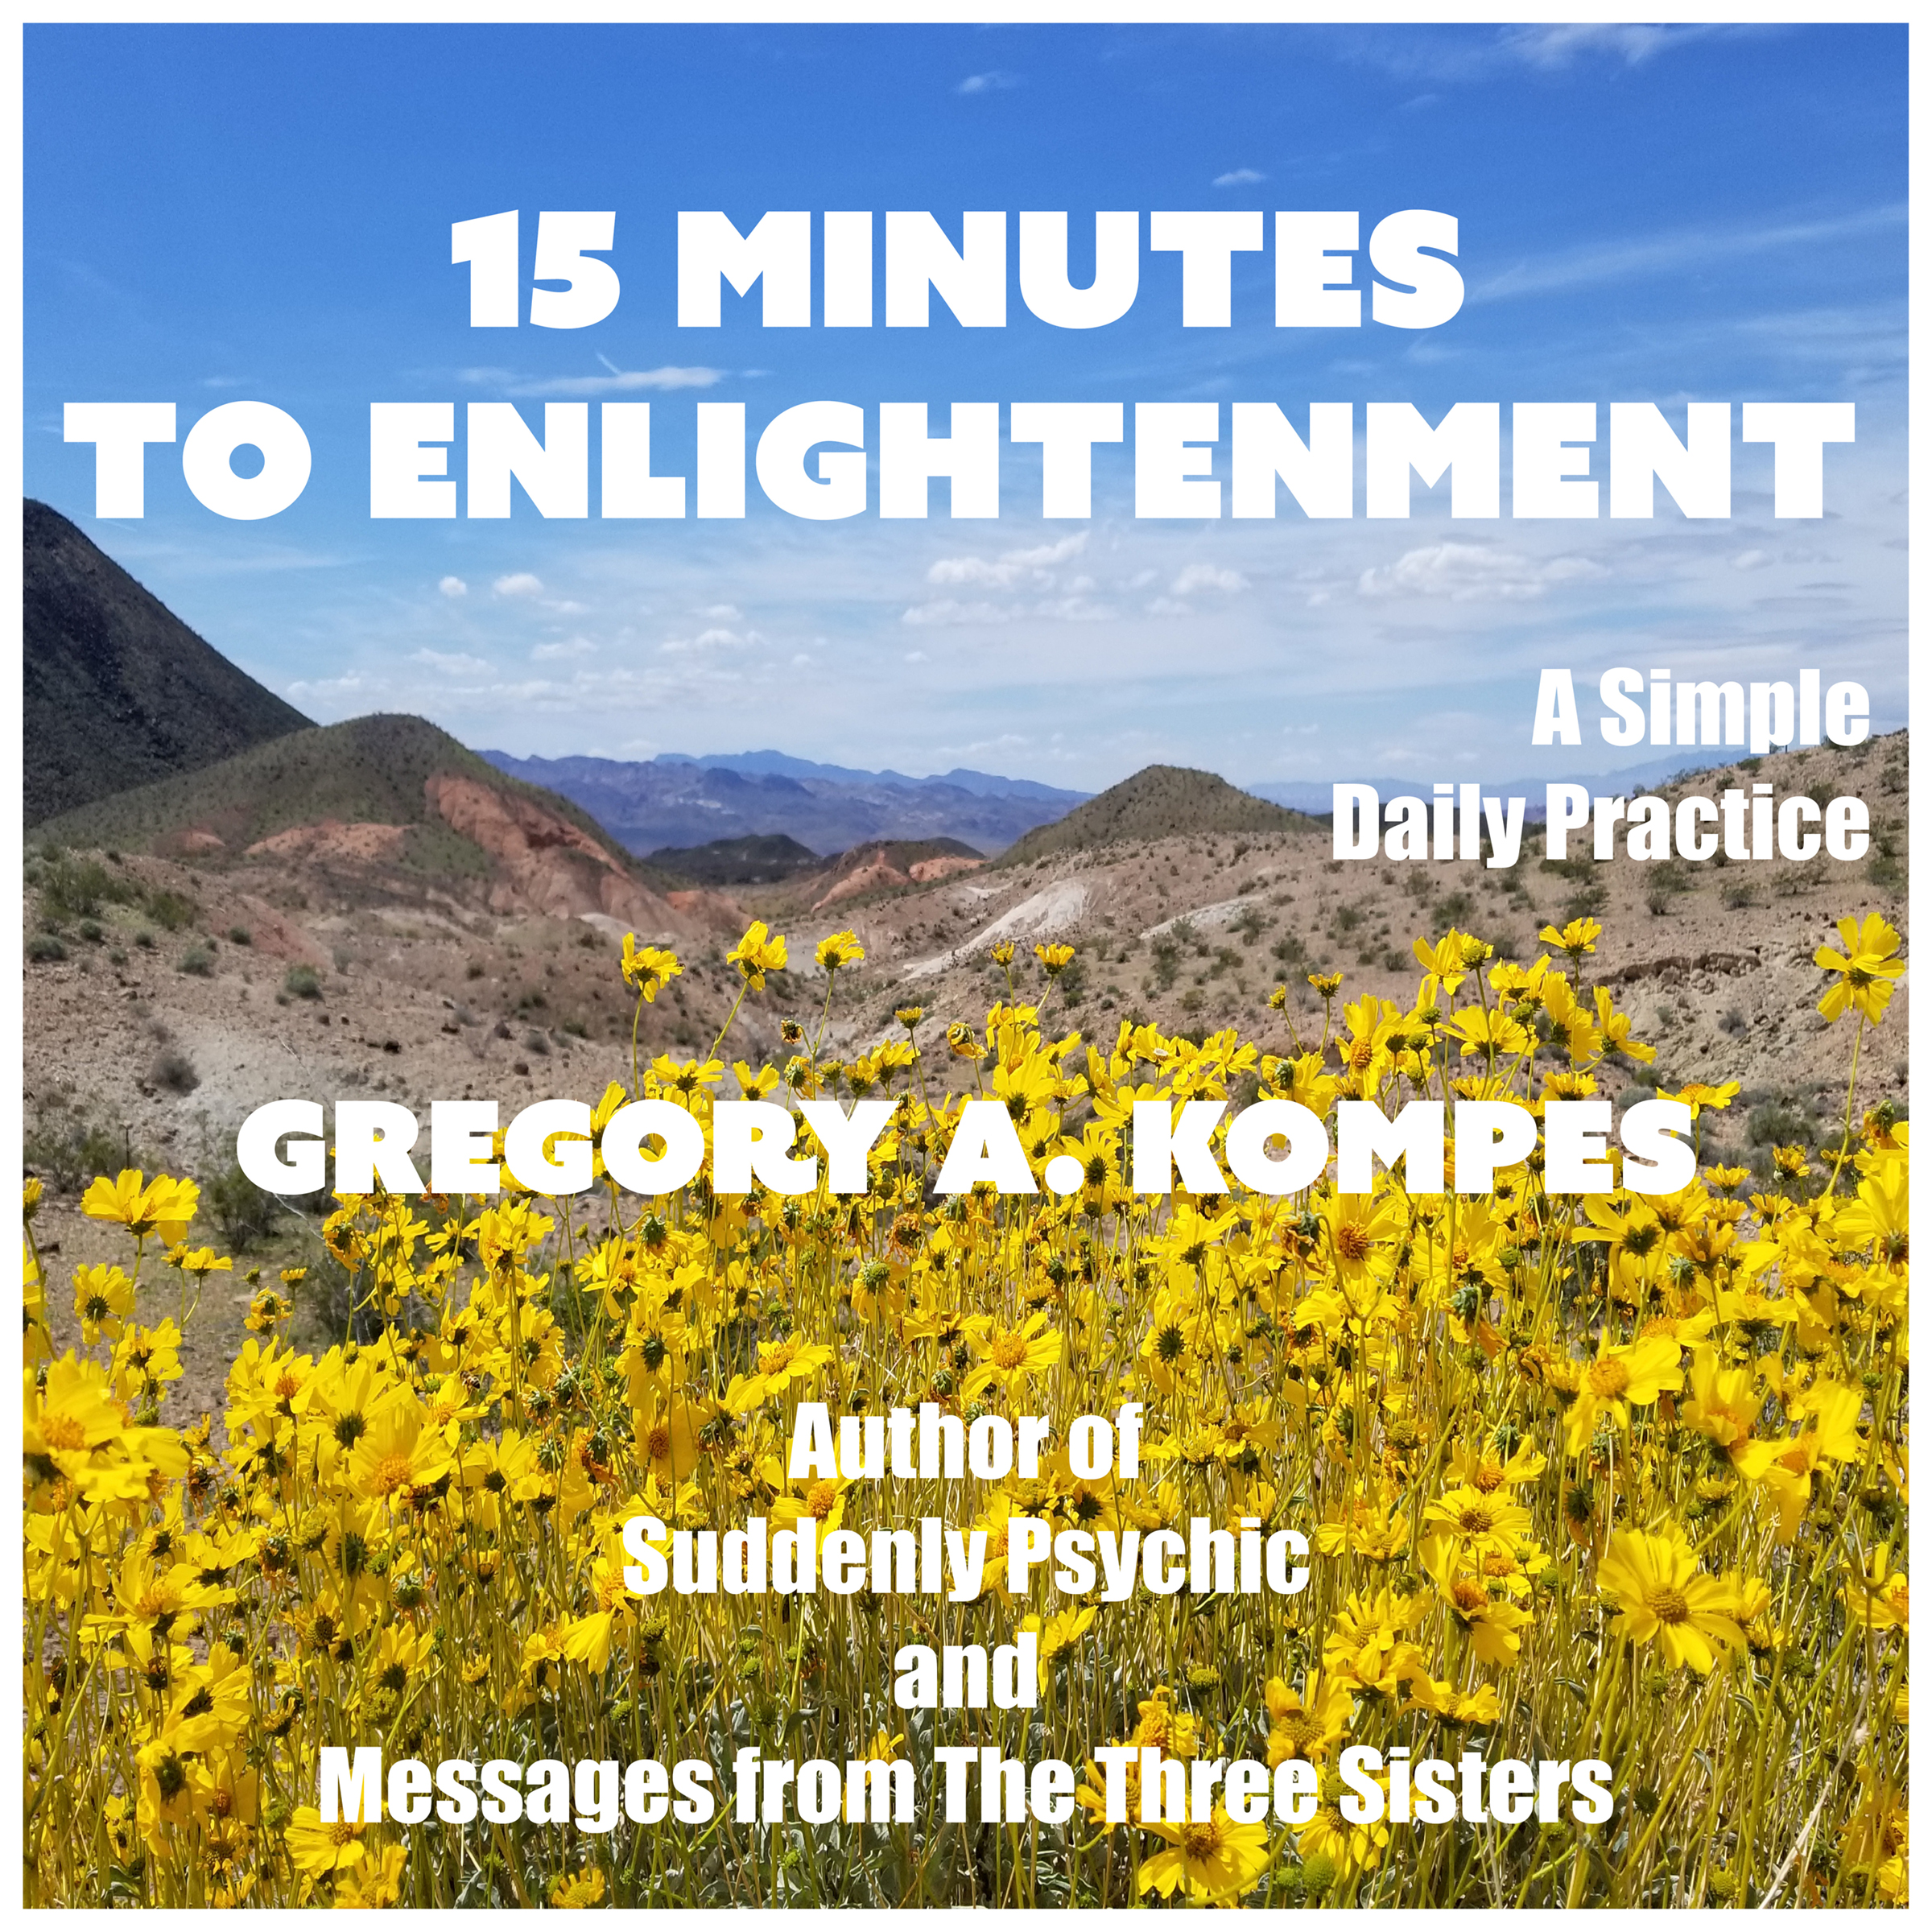 15 Minutes to Enlightenment